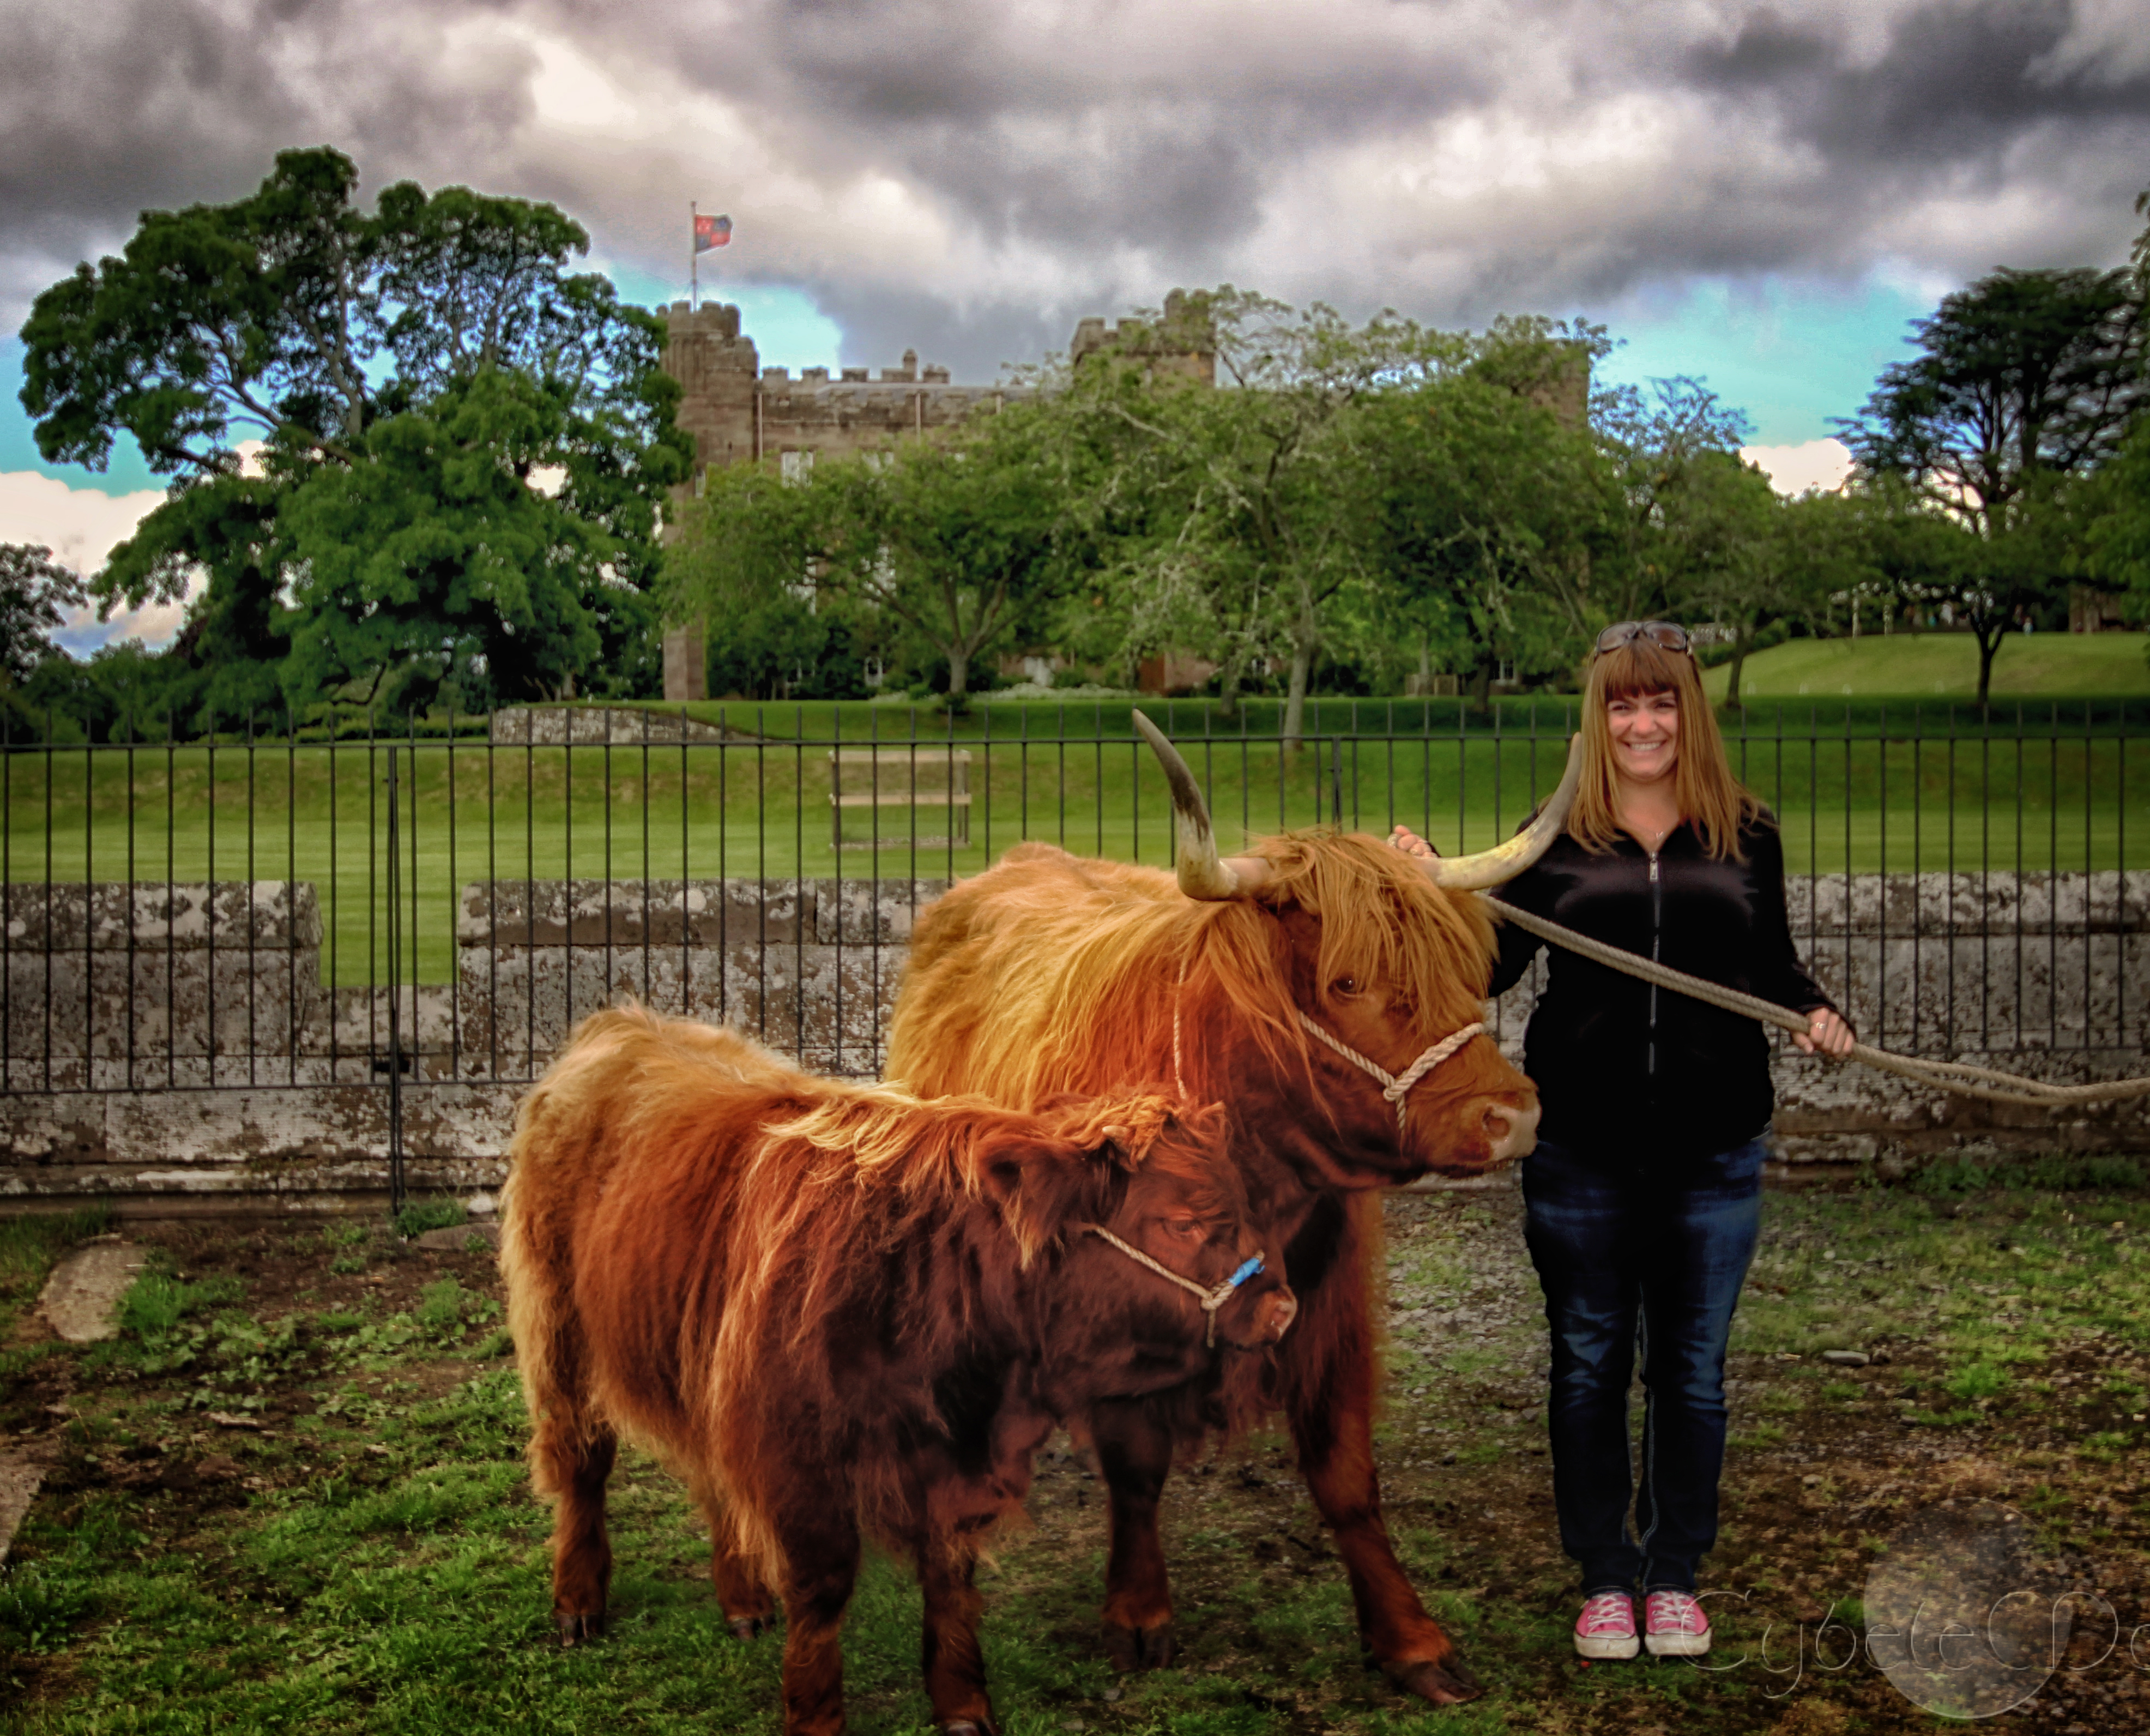 Coos!! Scone Palace in background